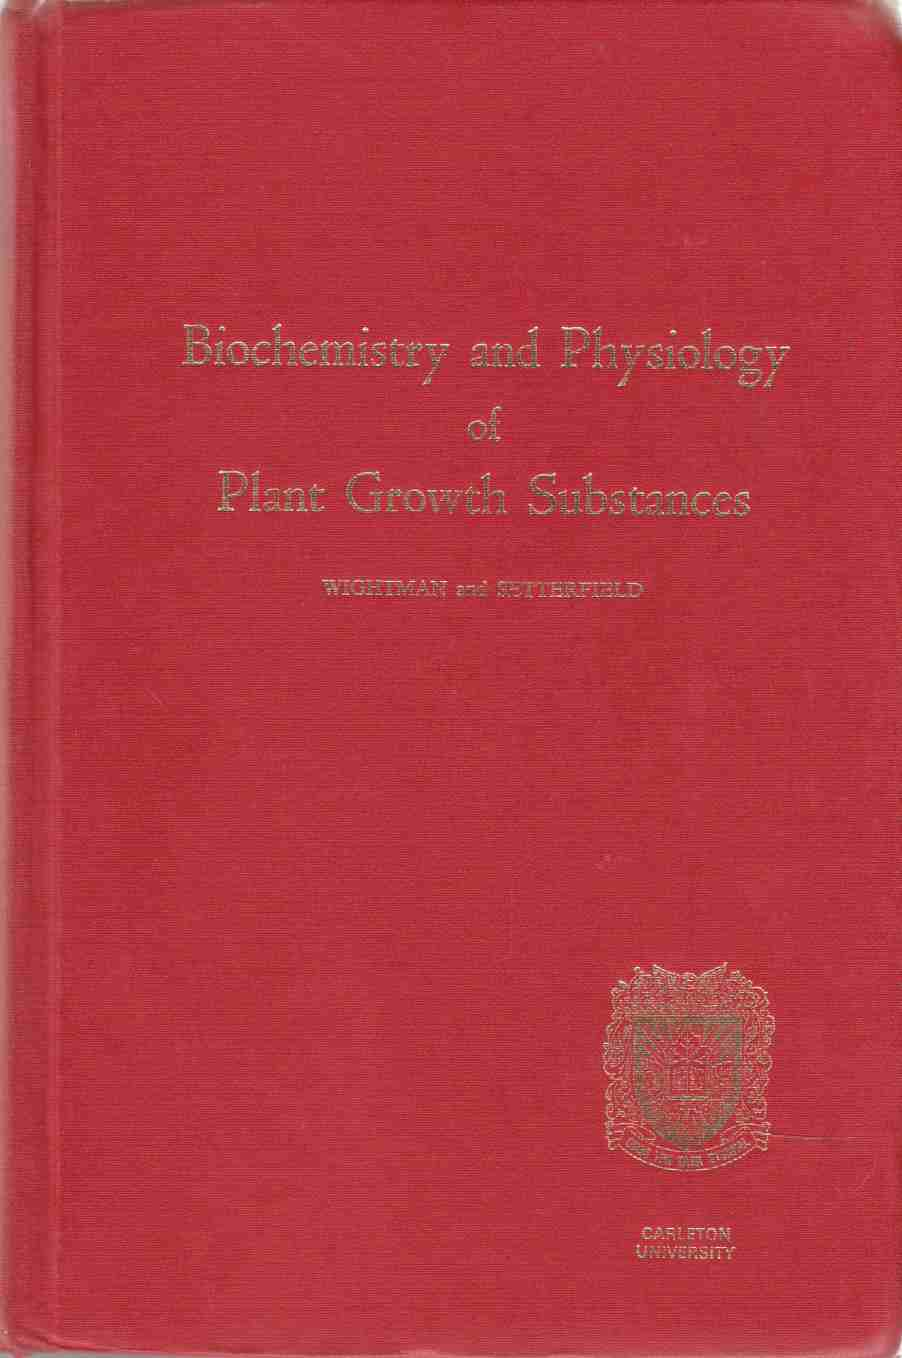 Image for Biochemistry and Physiology of Plant Growth Substances Proceedings of the 6th International Conference on Plant Growth Substances Held At Carleton University, Ottawa, July 24-9, 1967